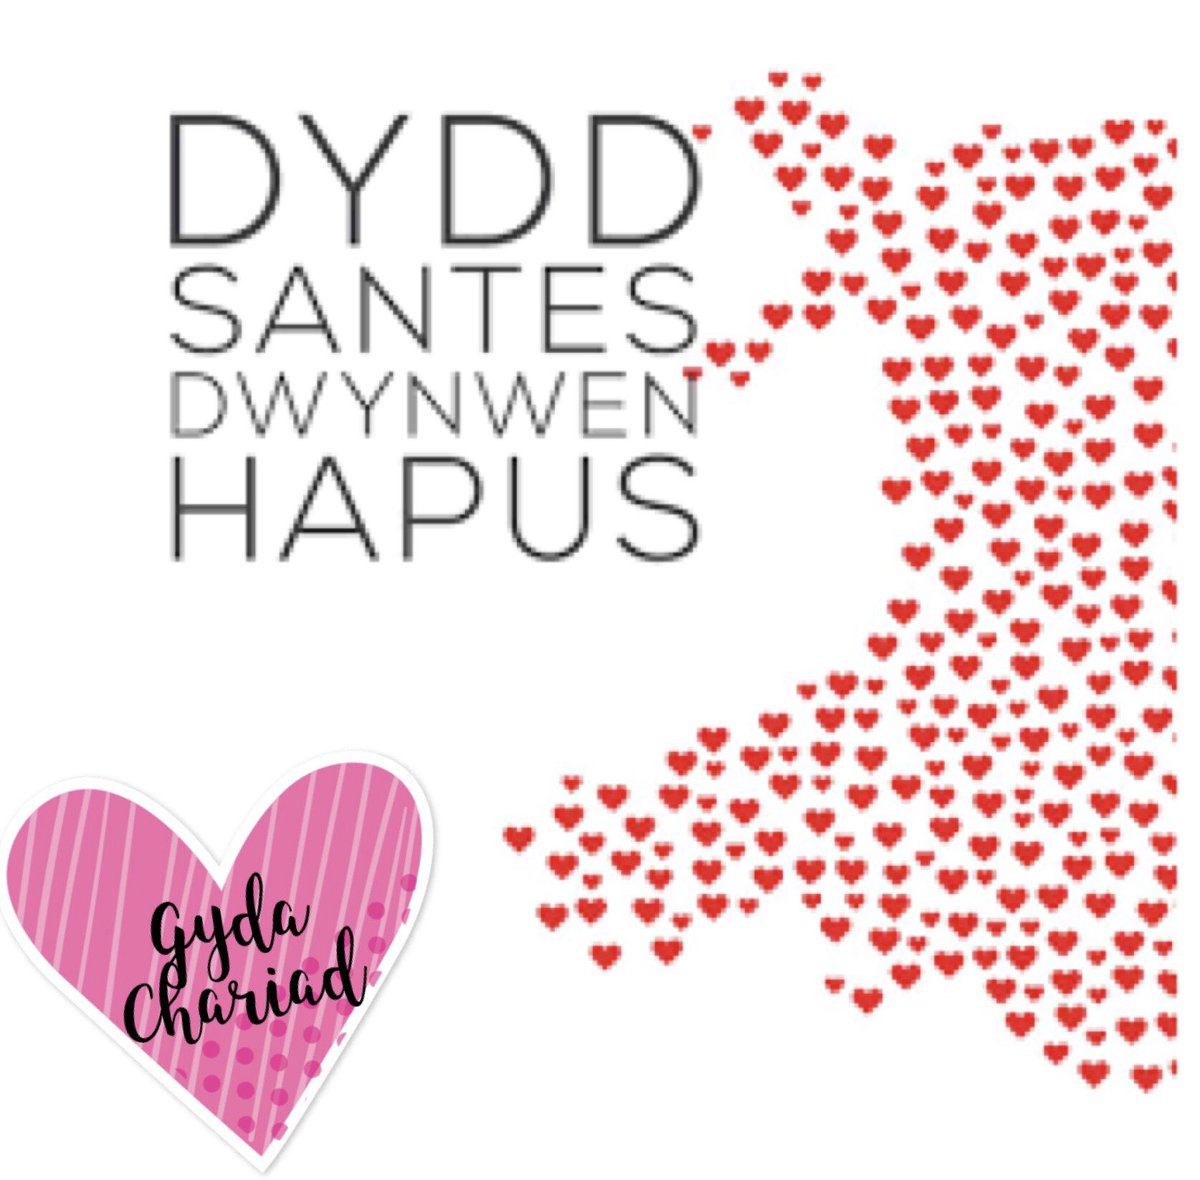 Dydd Santes Dwynwen Hapus - Happy St Dwynwen's Day  🏴❤️🧡💛💚💙💜🏴 Tasks are set on @Showmyhomework including the morning check-in and maths instruction videos - work hard and have a lovely day #week4 #proud #cwricwlwmcymreig #welshhistory